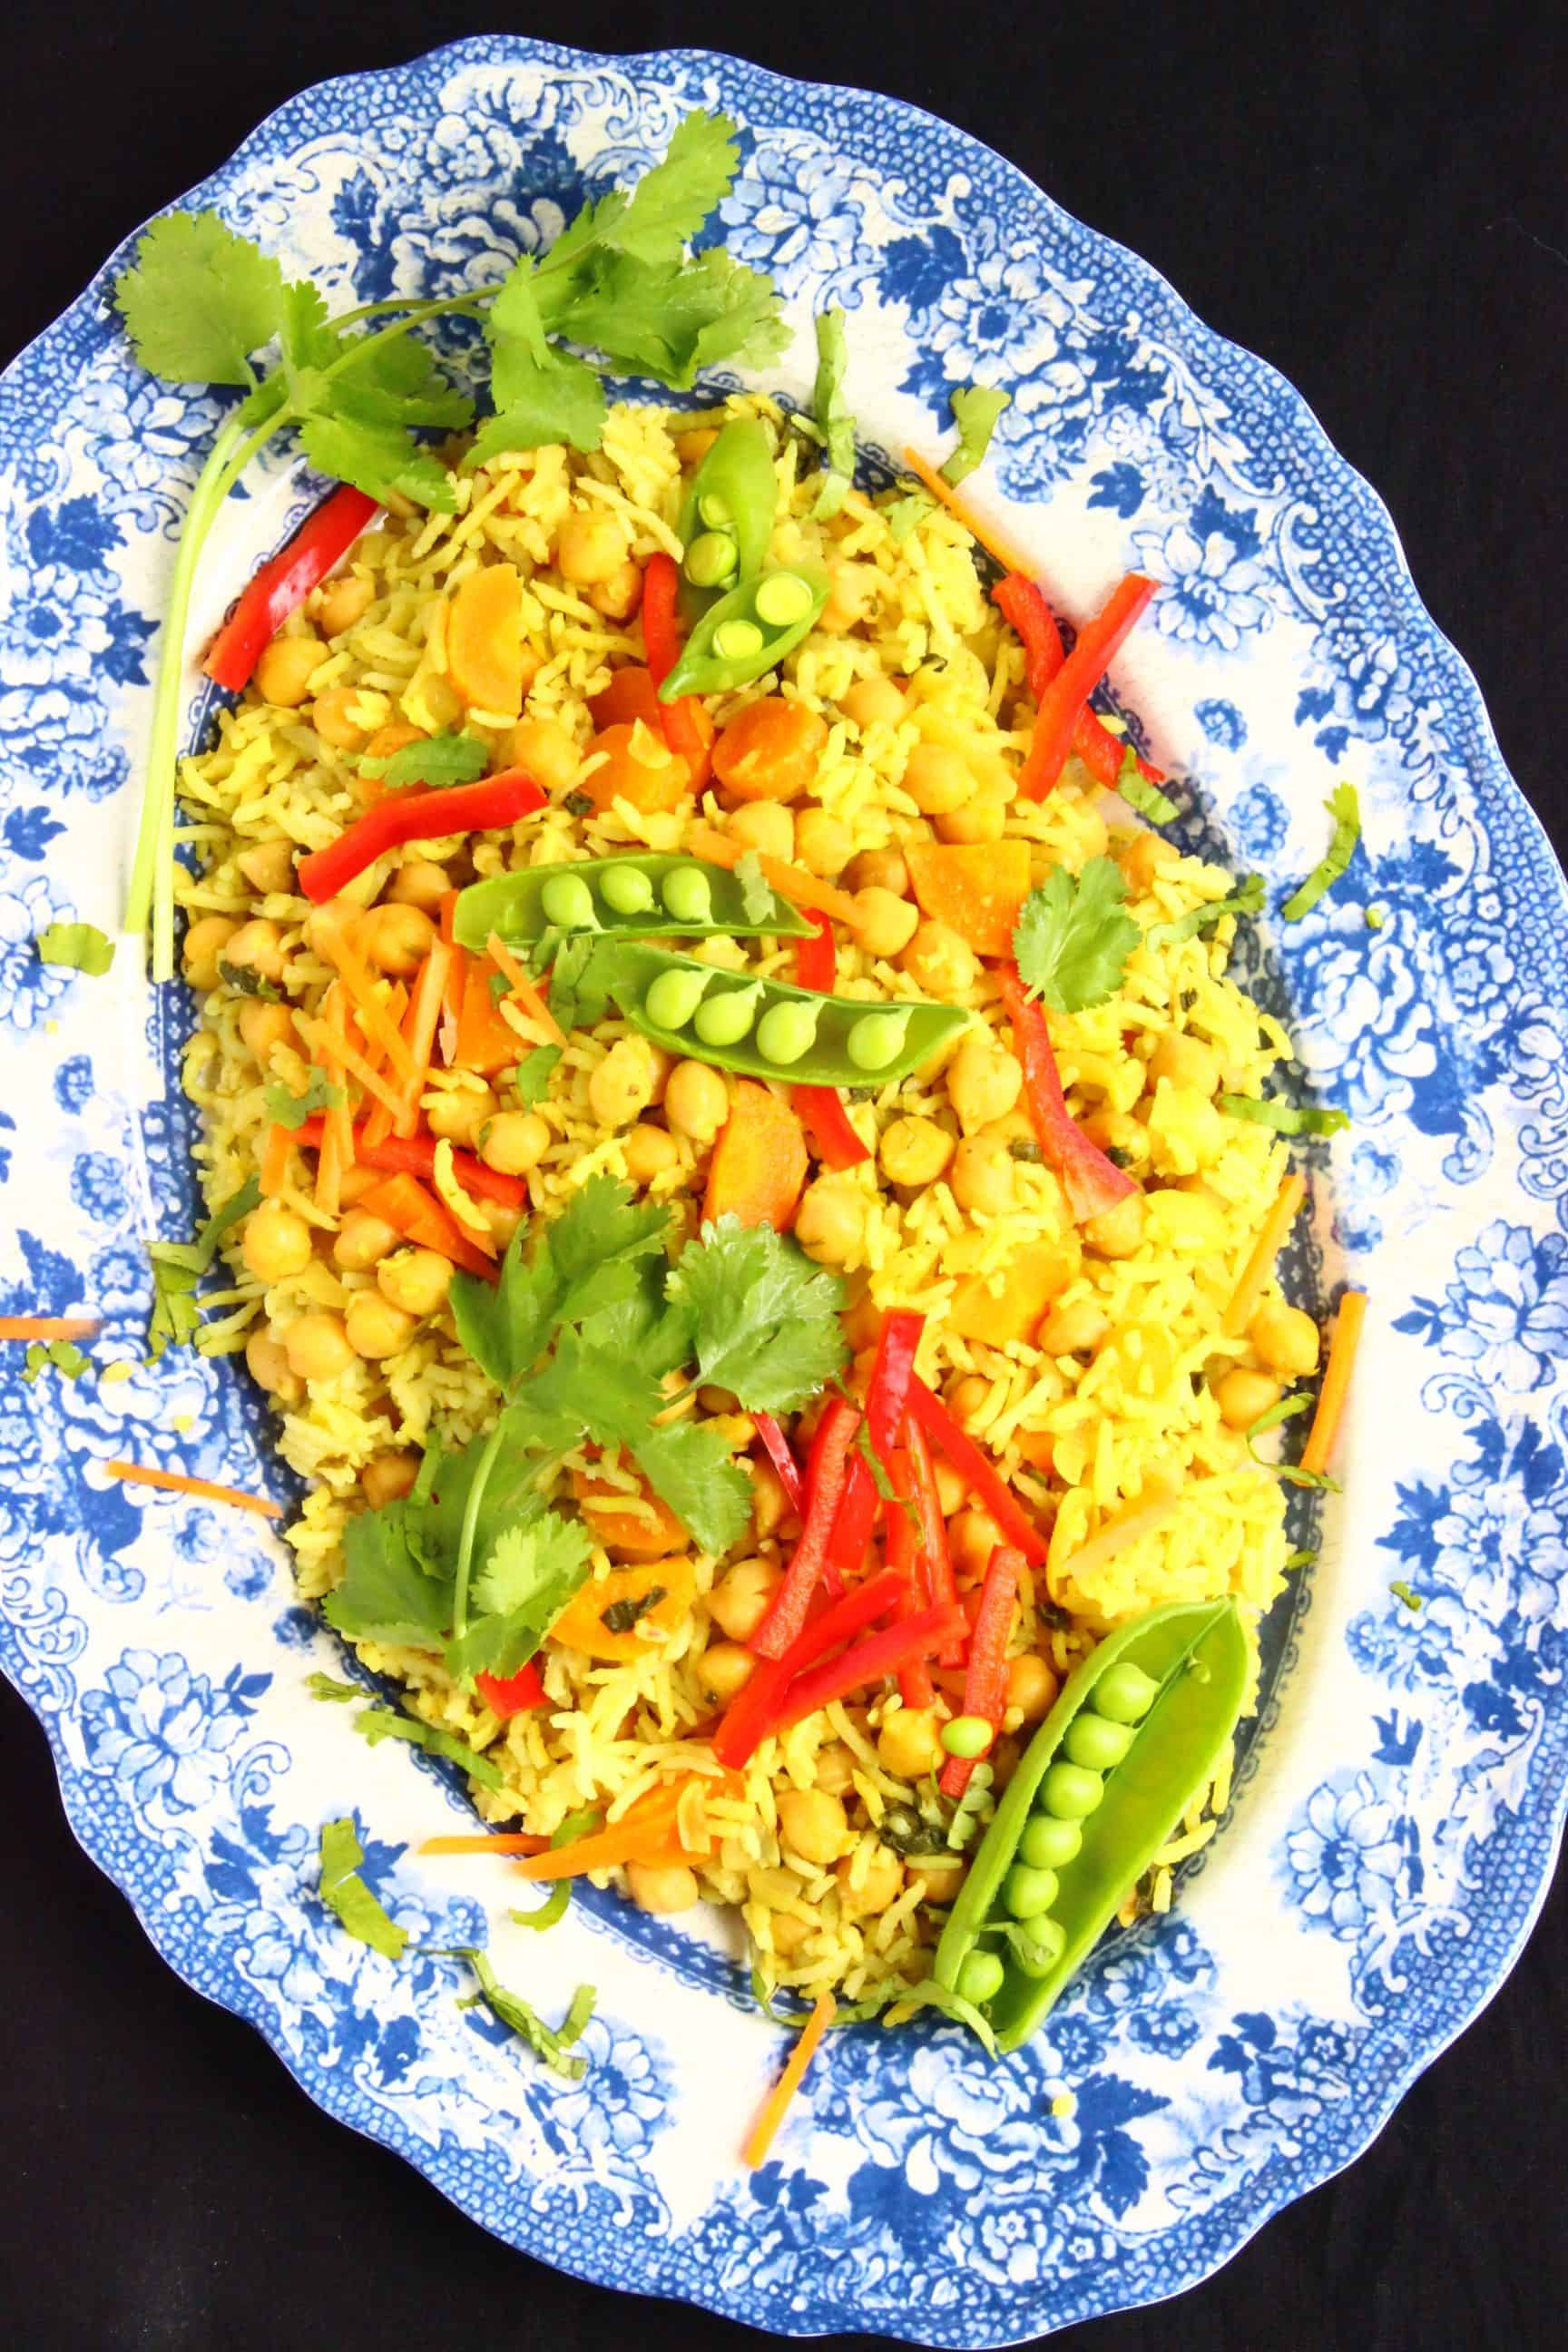 Yellow rice with green and red vegetables on a blue patterned plate against a black background